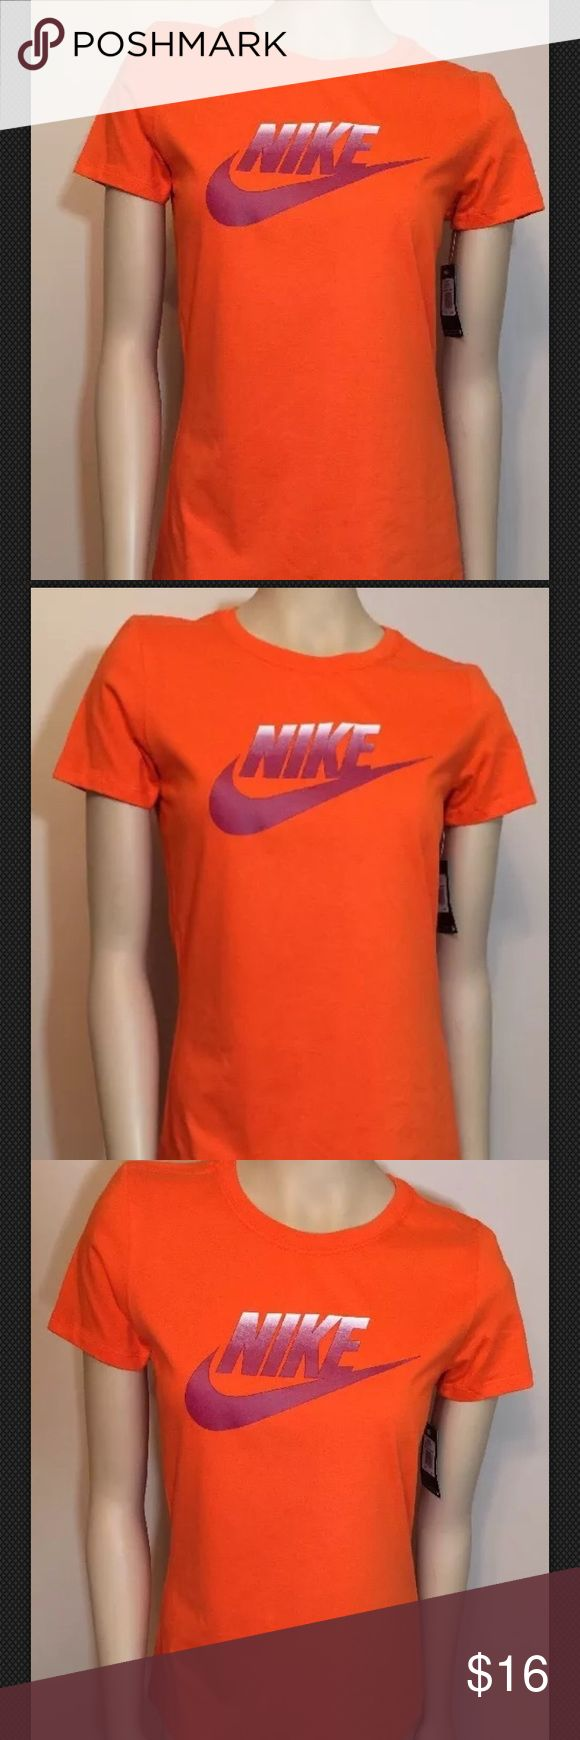 """Nike Futura Fade Orange TShirt Slim Fit M Nike Futura Fade Nike Swoosh Women's TShirt. Size Medium. 100% Cotton. Slim fit style. New with tags. 17"""" Armpit to armpit and 25.5"""" long. Retail $25.00 I ship on the same or next day from a smoke free home. I try to describe items honestly and price them fairly. Please feel free to ask any questions or make an offer. I'm happy to help. Nike Tops Tees - Short Sleeve"""